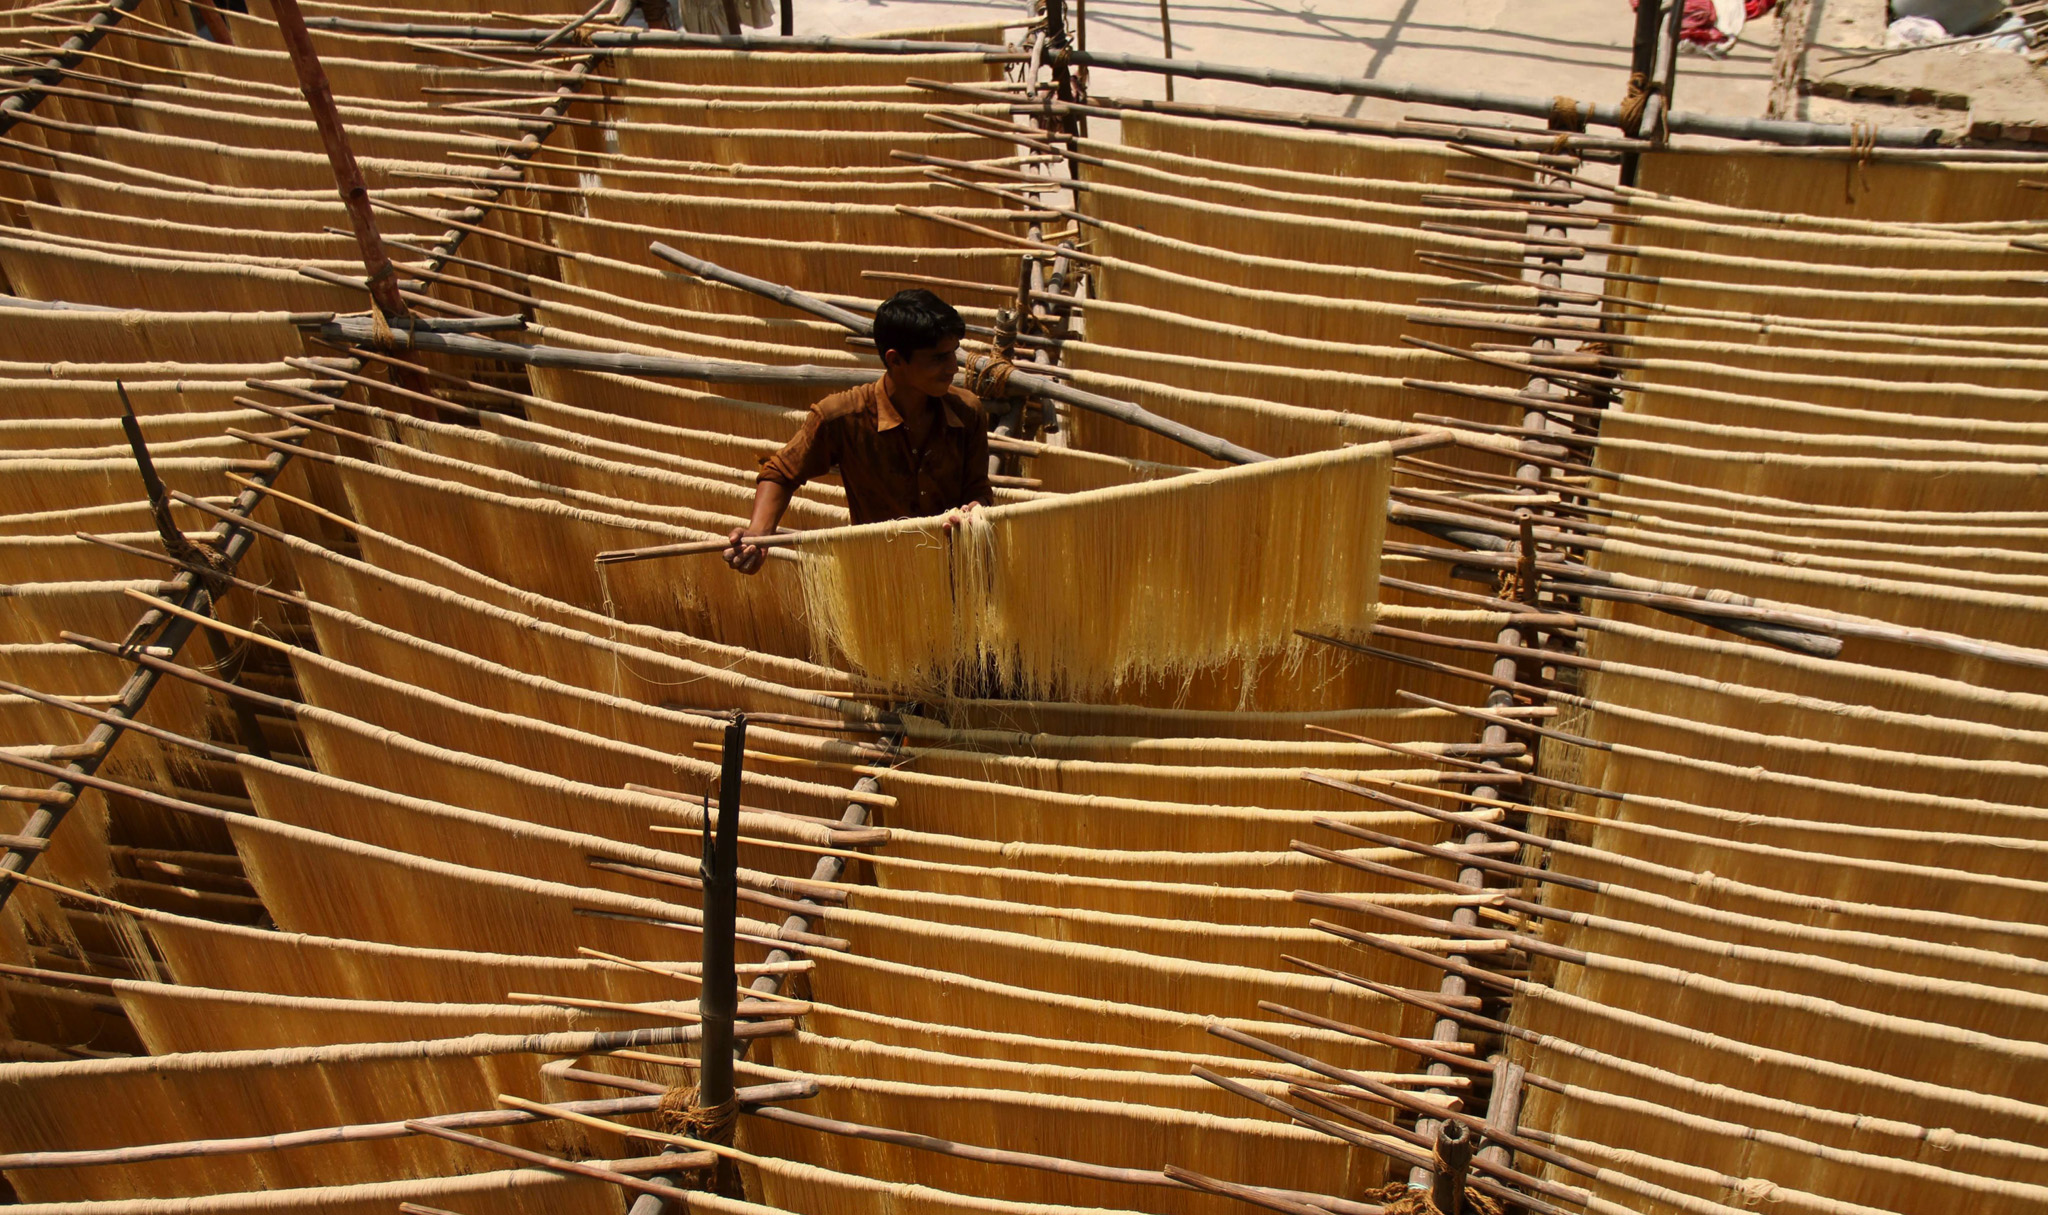 A worker prepares vermicelli at a workshop in Hyderabad, Pakistan, ahead of the holy fasting month of Ramadan.